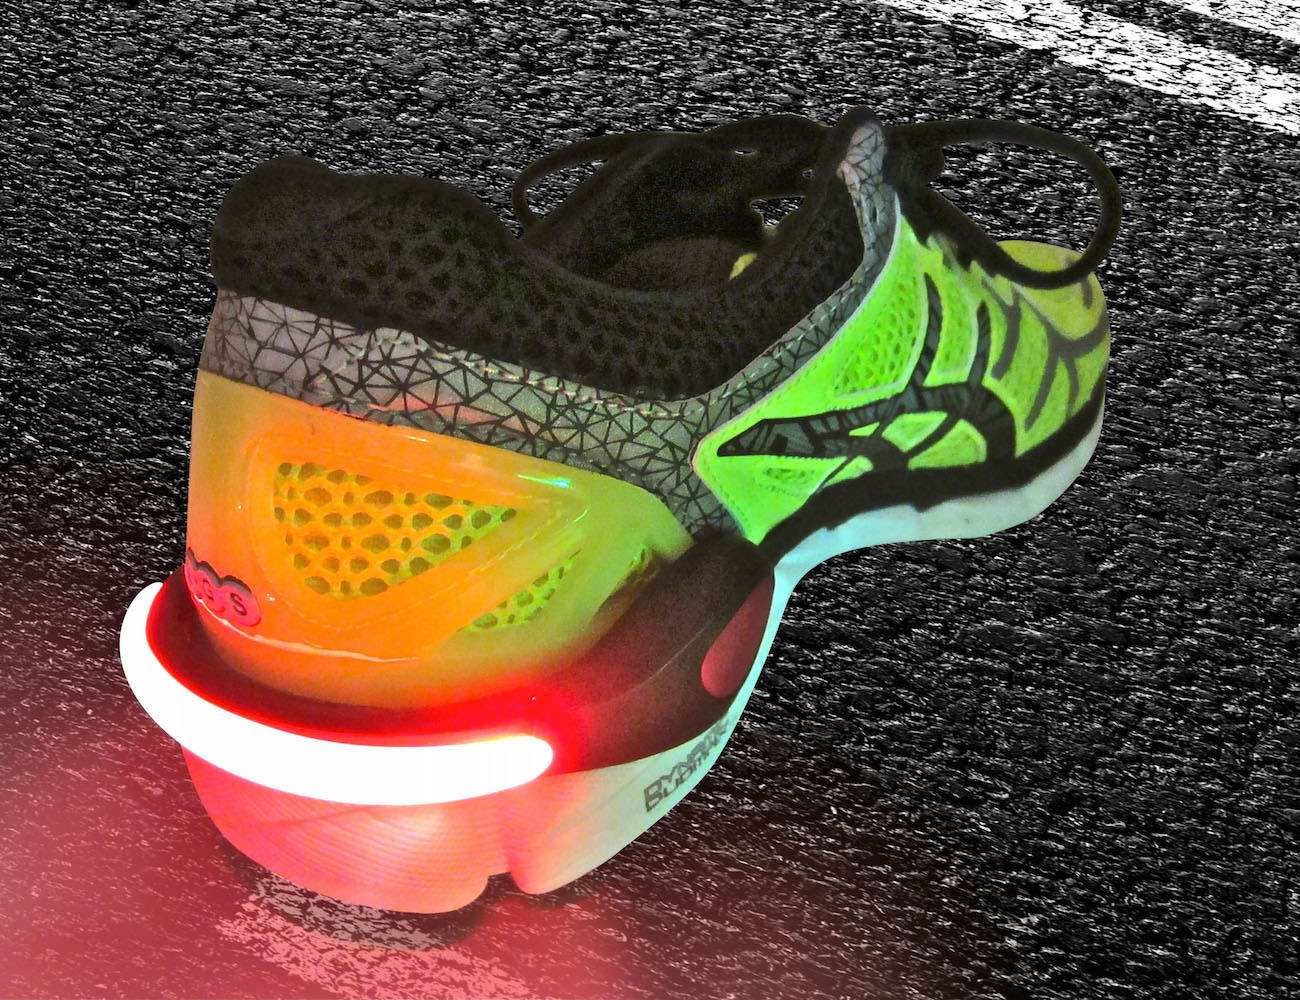 firefly-running-biking-light-spurs-04